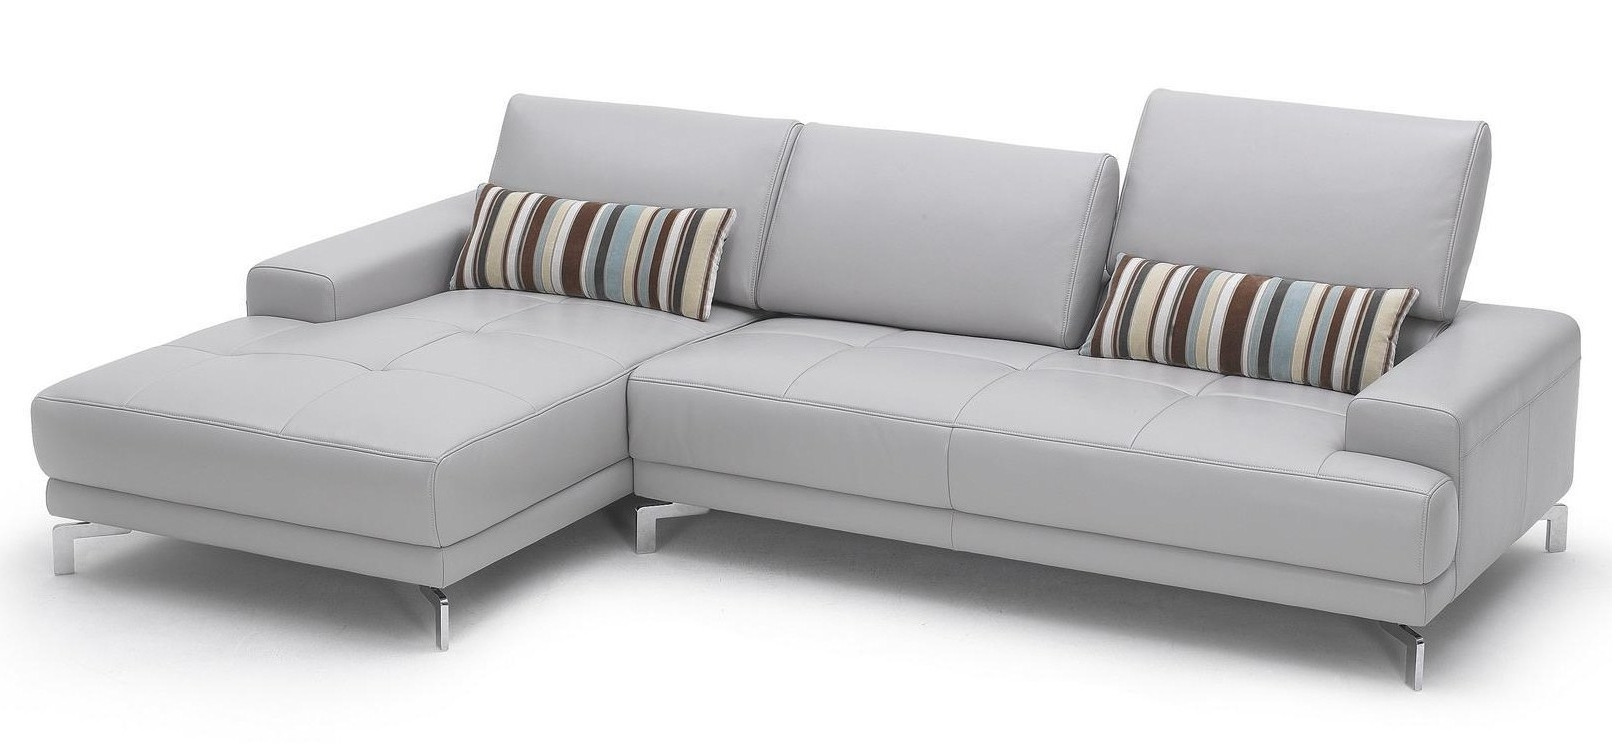 White Modern Sofas For Most Recent Sofas Modern And Modern Sofa White New York (View 7 of 15)